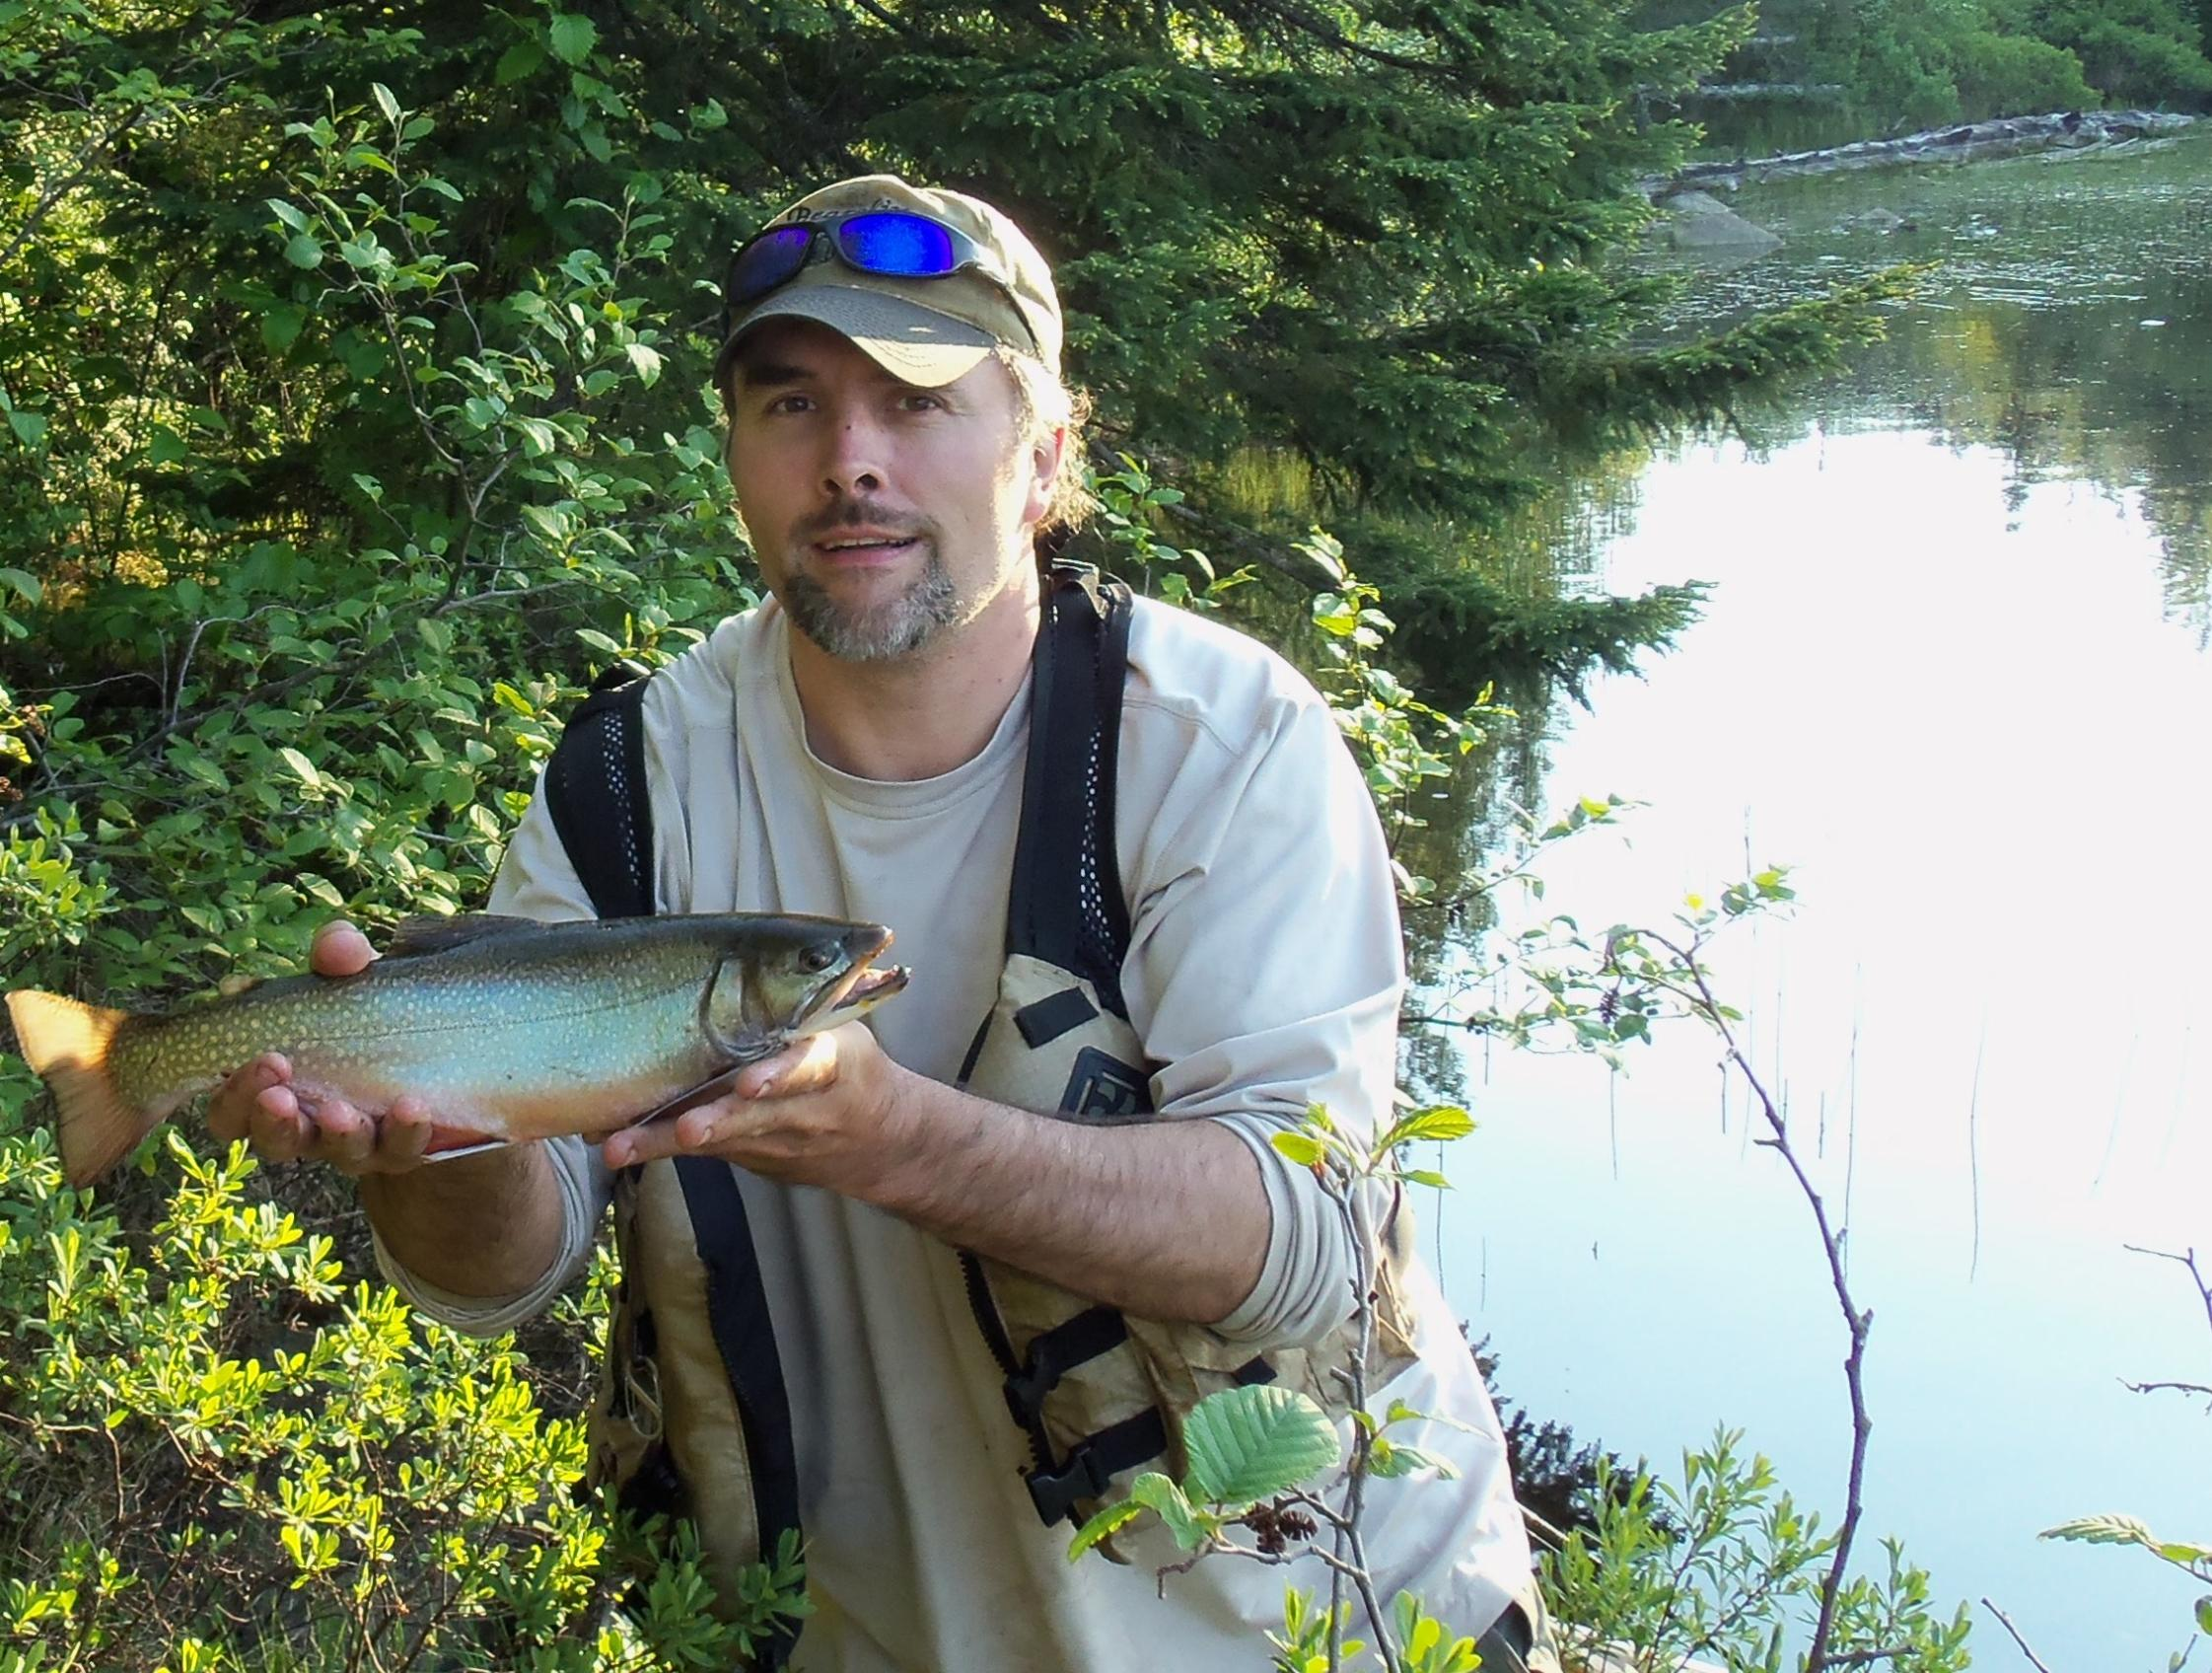 Bwca spring trout tackle boundary waters fishing forum for Boundary waters fishing